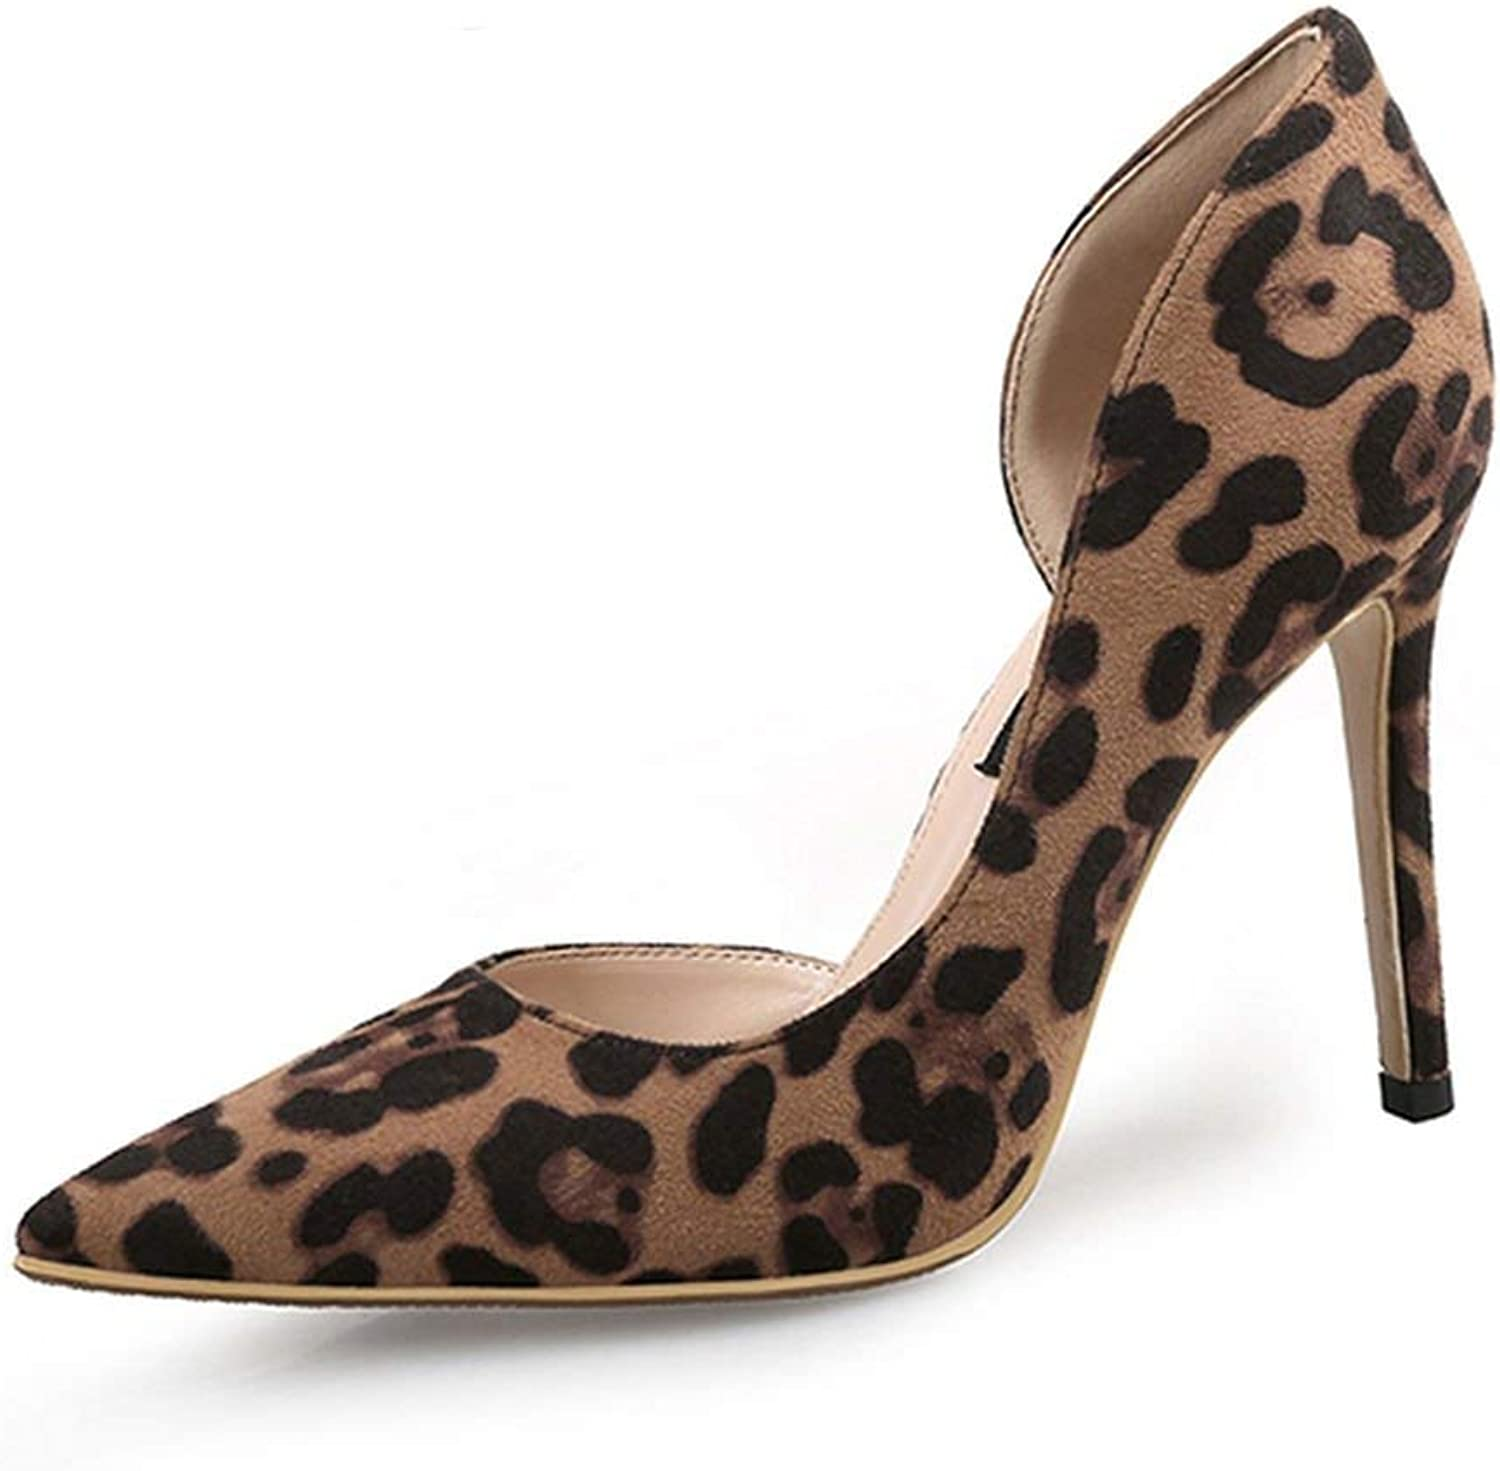 Heeled-Sandalssexy Women Pumps High Heels shoes Spring Leopard Thin Heels Woman Party shoes Plus Size Pointed Toe Single Female Pumps 45,Two Piece 8Cm,7.5